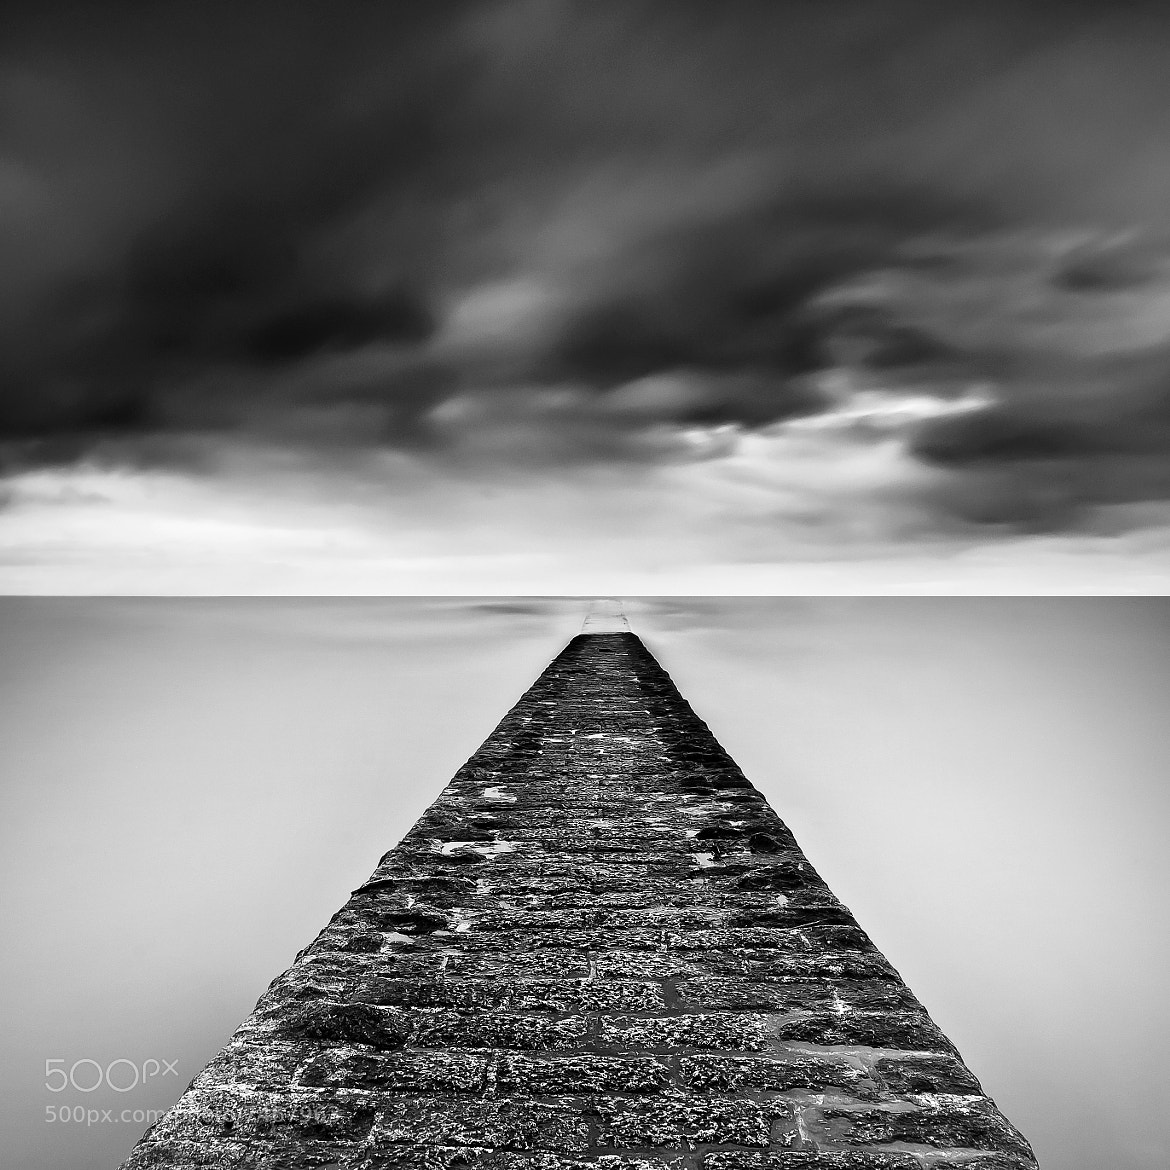 Photograph THE LONG ONE by Spencer Brown on 500px